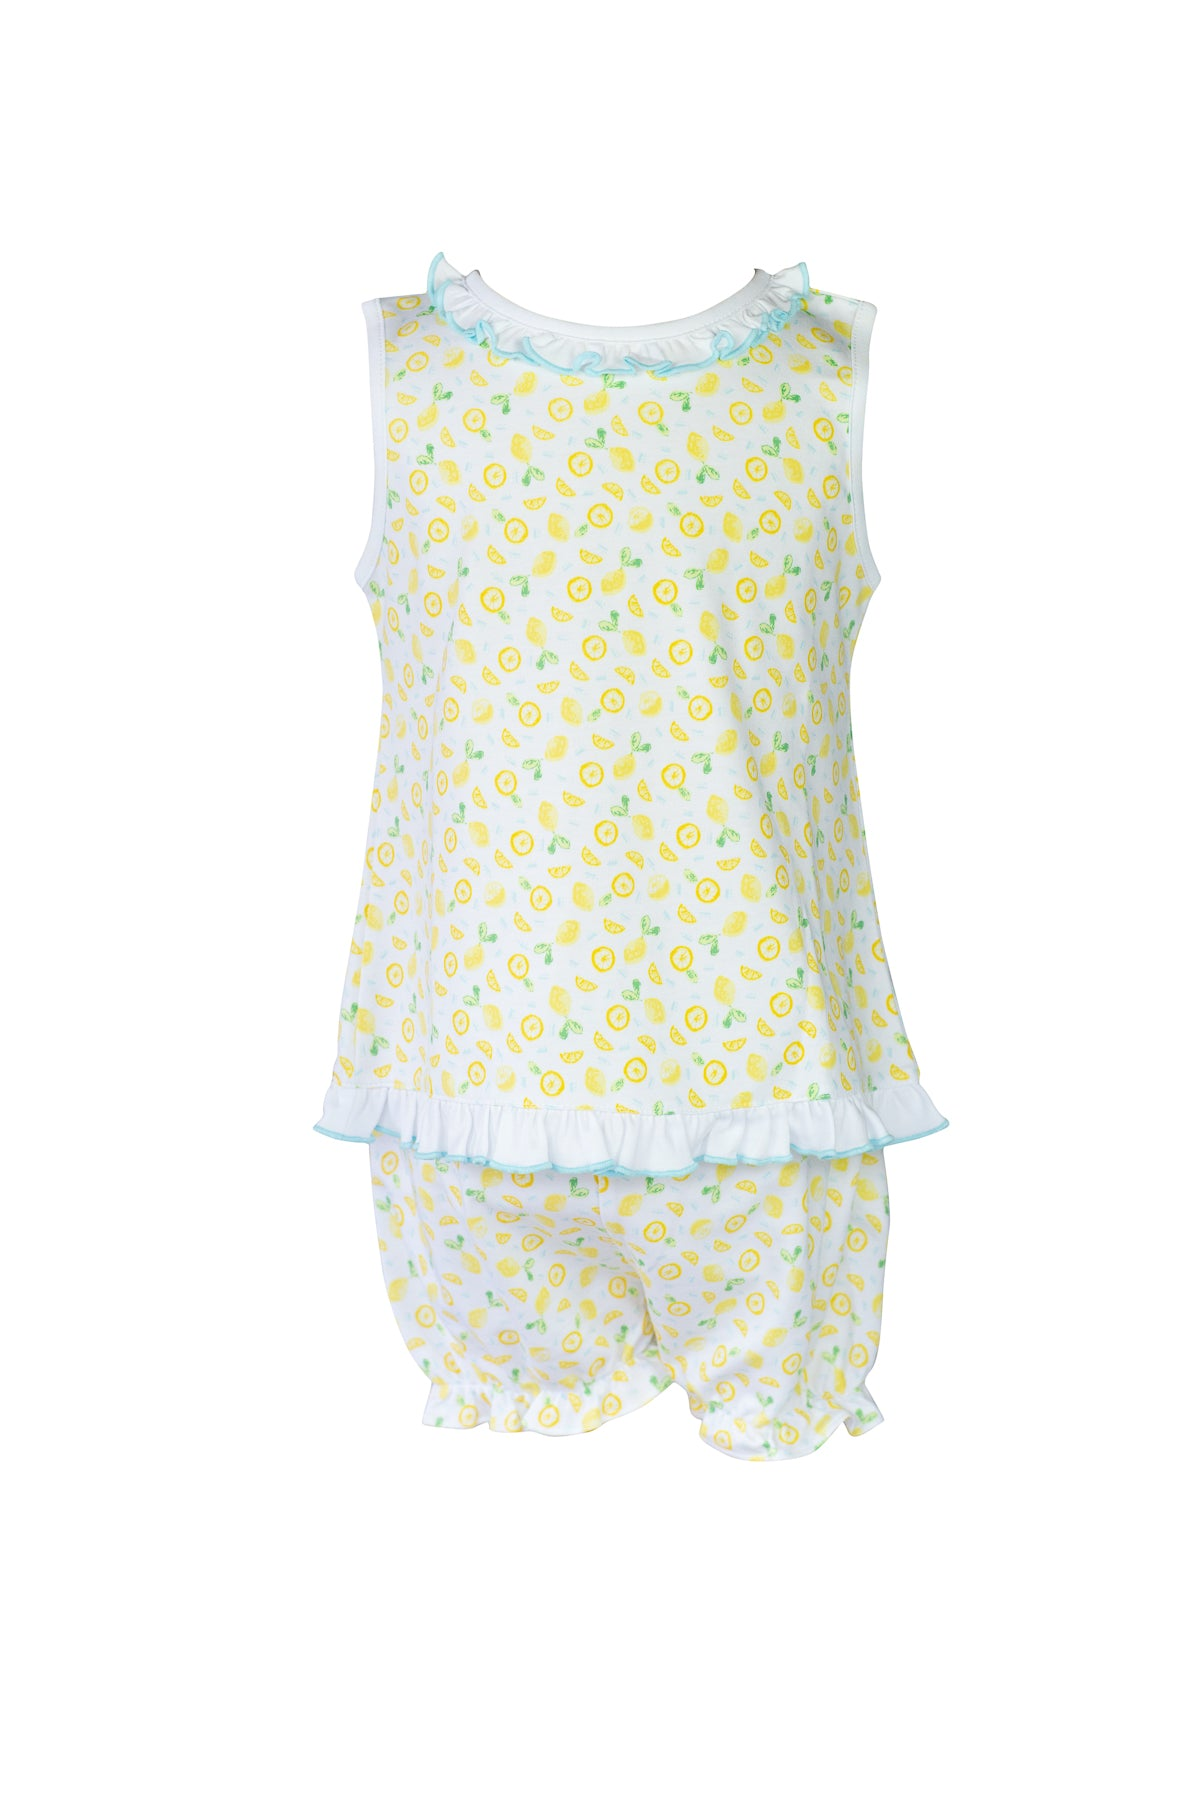 Lemons Girl Ruffle Bloomer Set